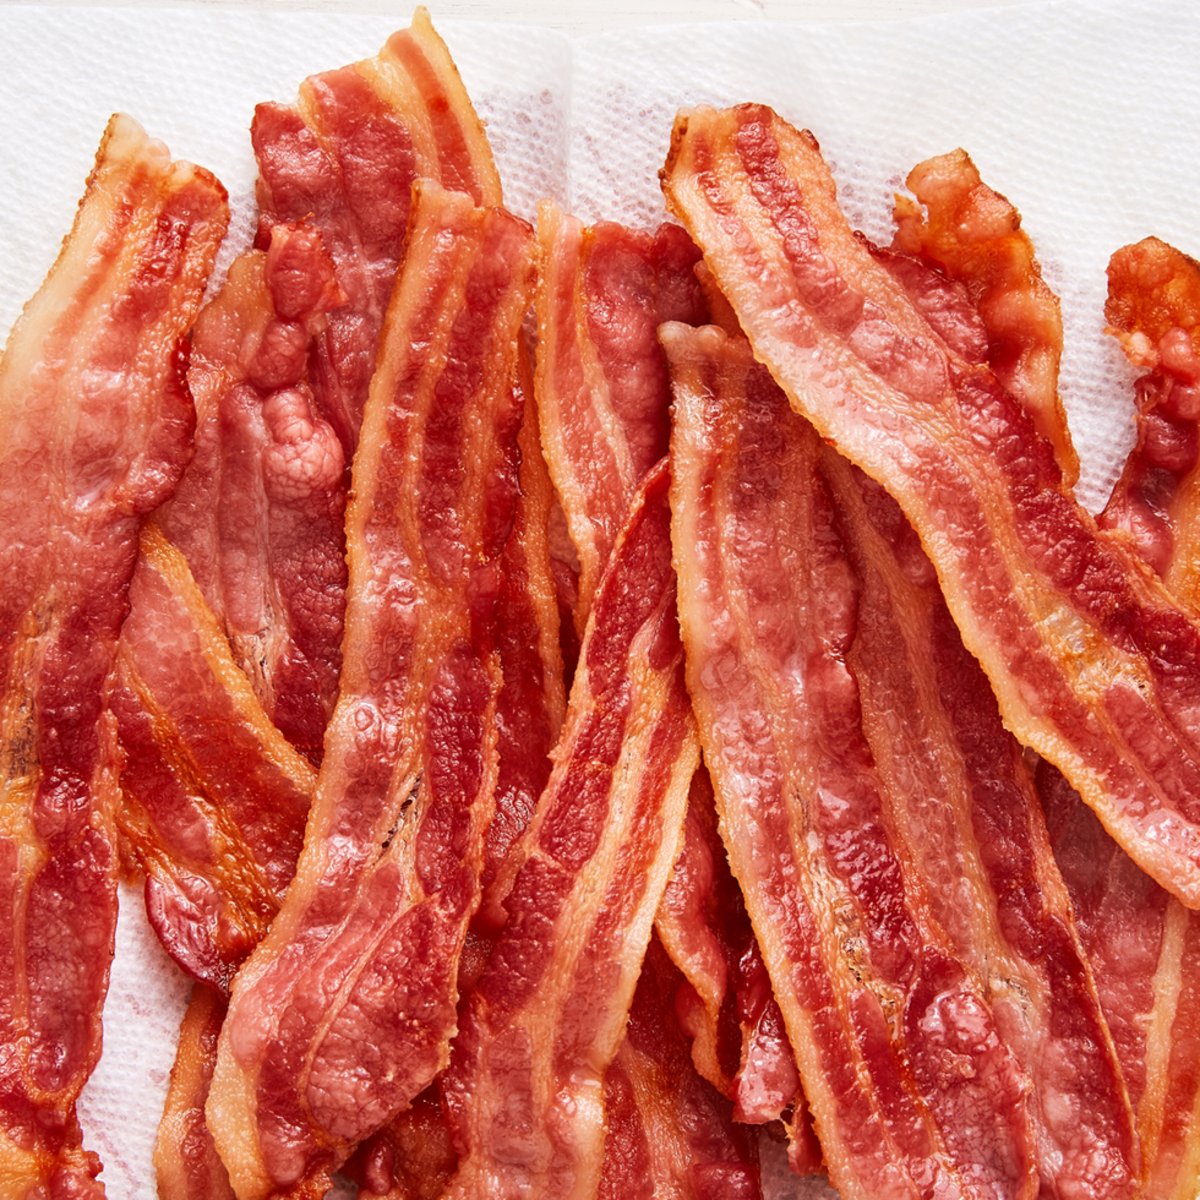 In 1963, you could buy a one-pound package of bacon for 59 cents.